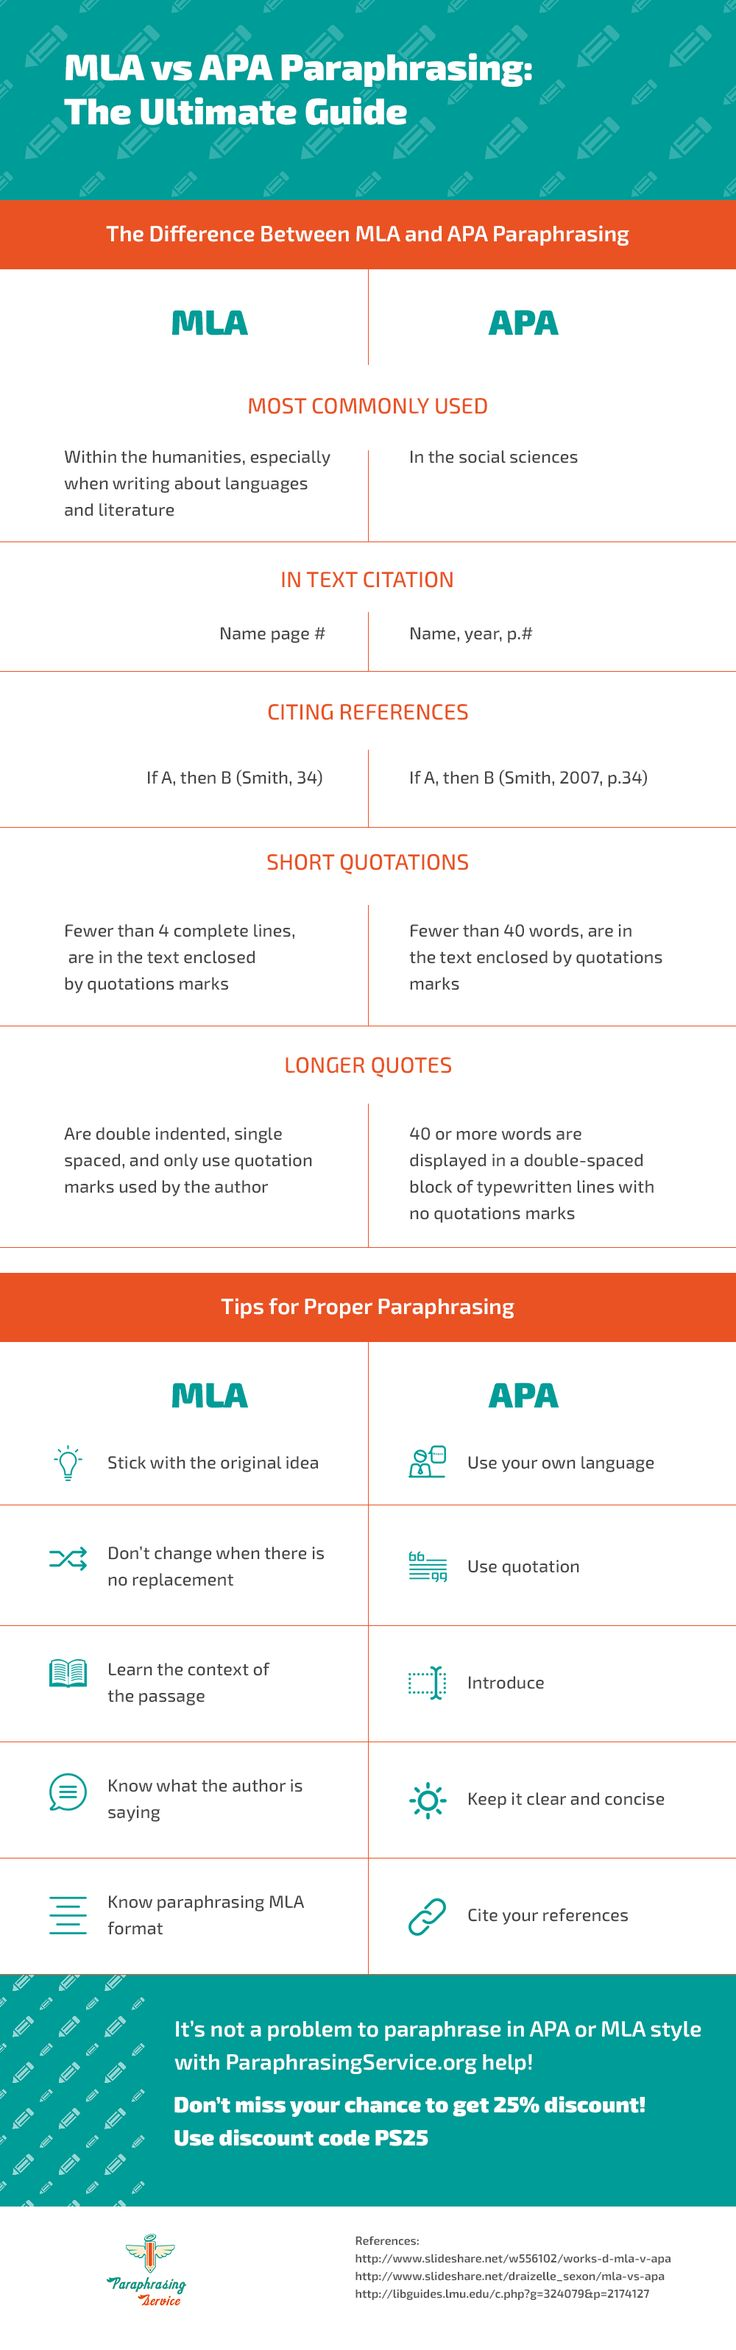 http://www.paraphrasingservice.org/mla-vs-apa-paraphrasing-the-ultimate-guide…